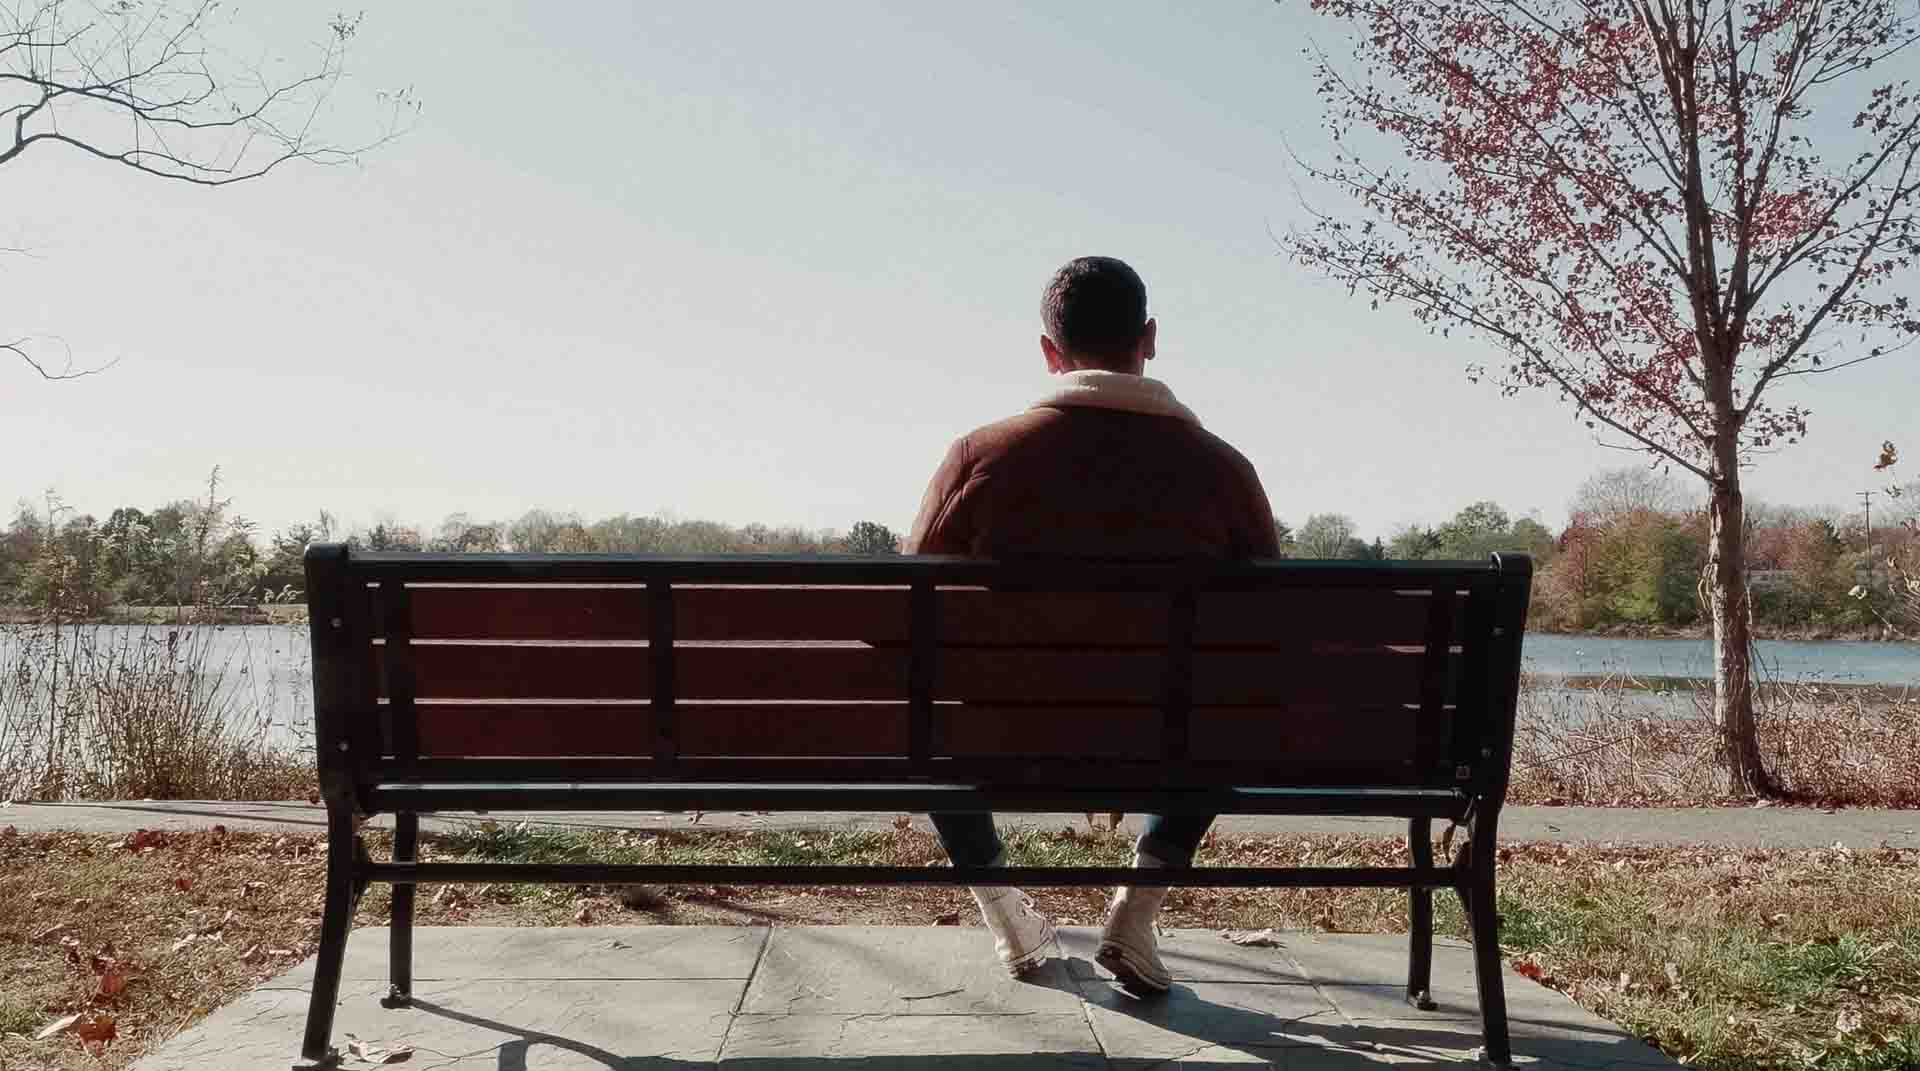 'My Brothers & Friends' directed by Noah Marks is a film which sets out to explore the societal pressures affecting young adults.